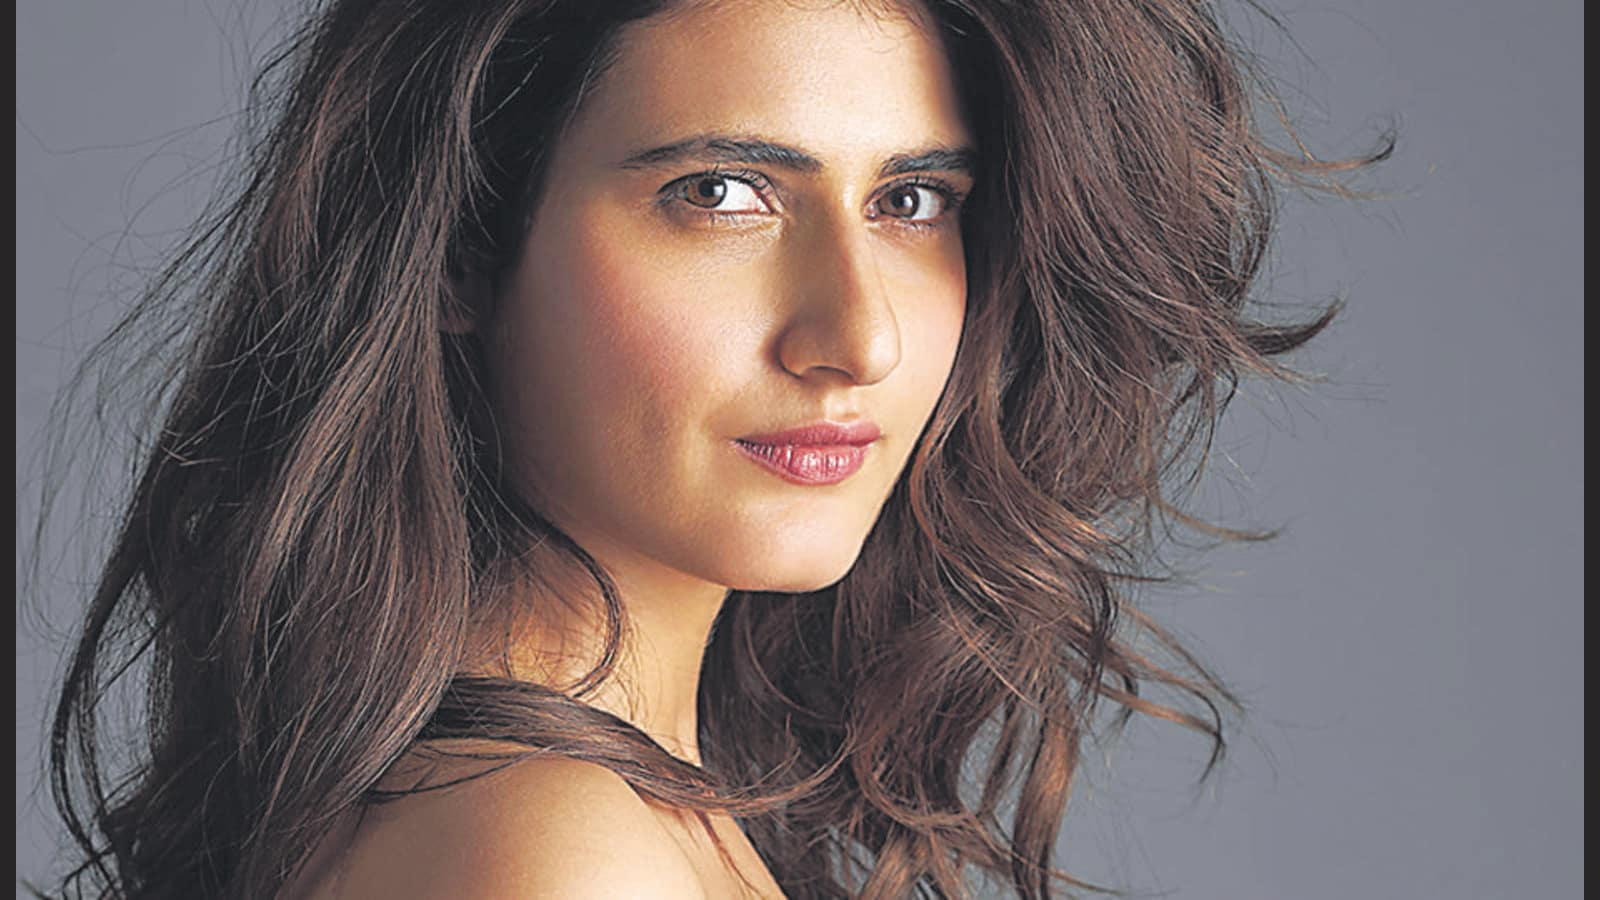 Fatima Sana Shaikh: In a pandemic where everything is shut, I can't be more grateful that people are seeing my work on OTT | Bollywood - Hindustan Times